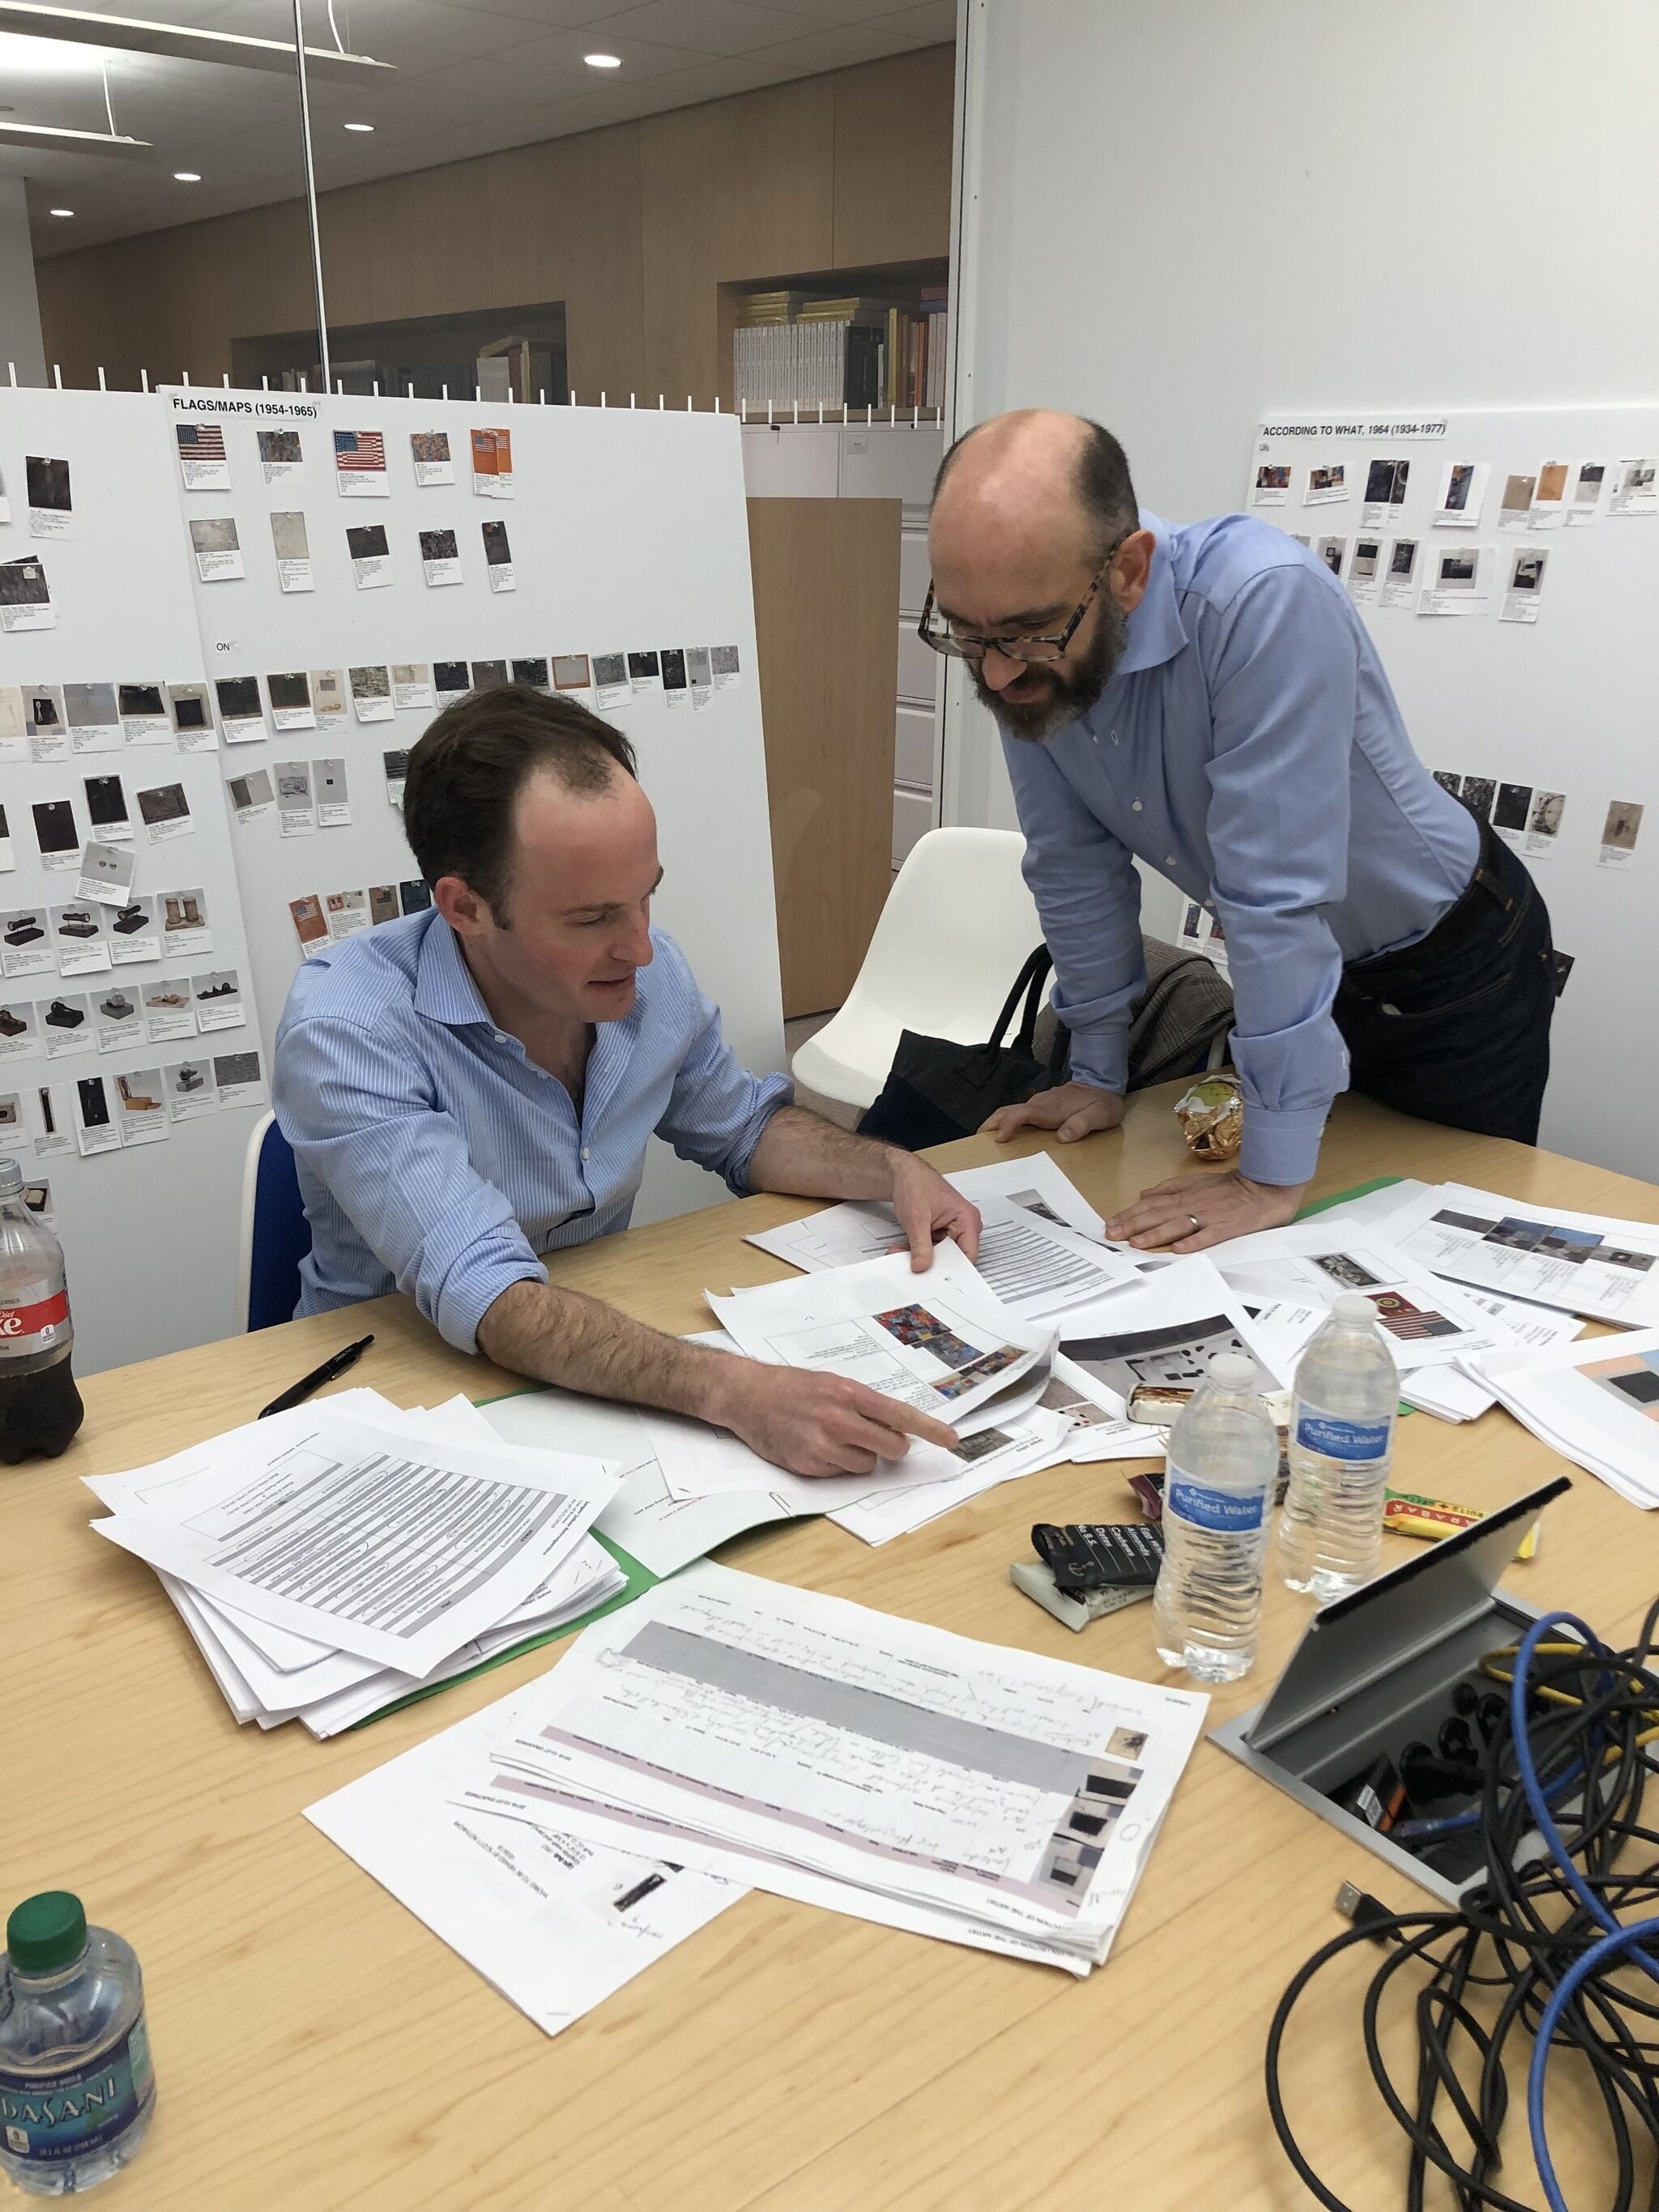 Curators Scott Rothkopf and Carlos Basualdo, both wearing blue button-down shirts, lean over a table with scattered papers related to the exhibition Jasper Johns: Mind/Mirror.